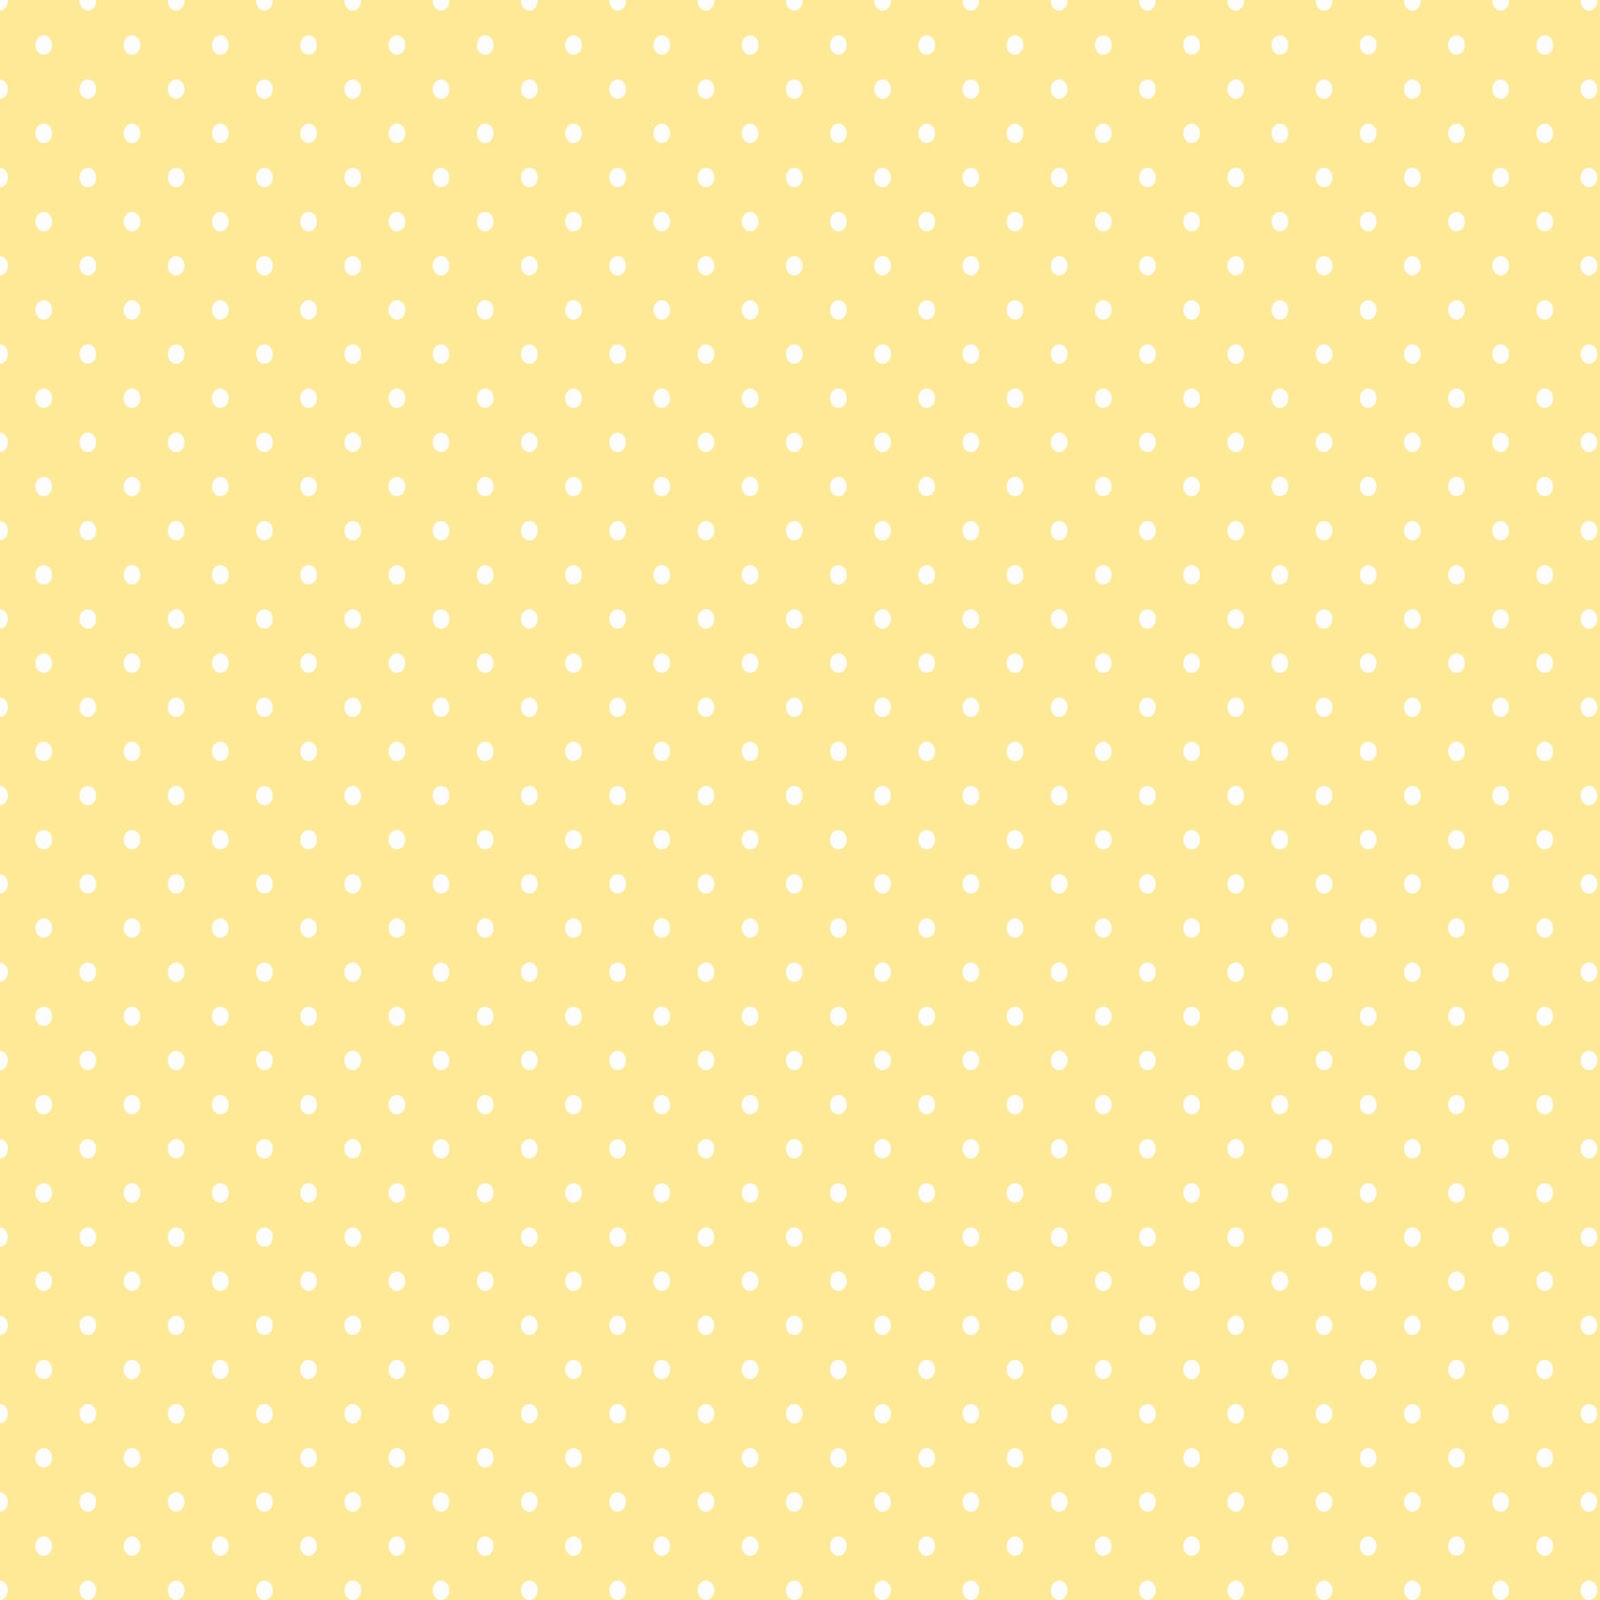 Stampin Damour Free Digital Scrapbook Paper Yellow With White